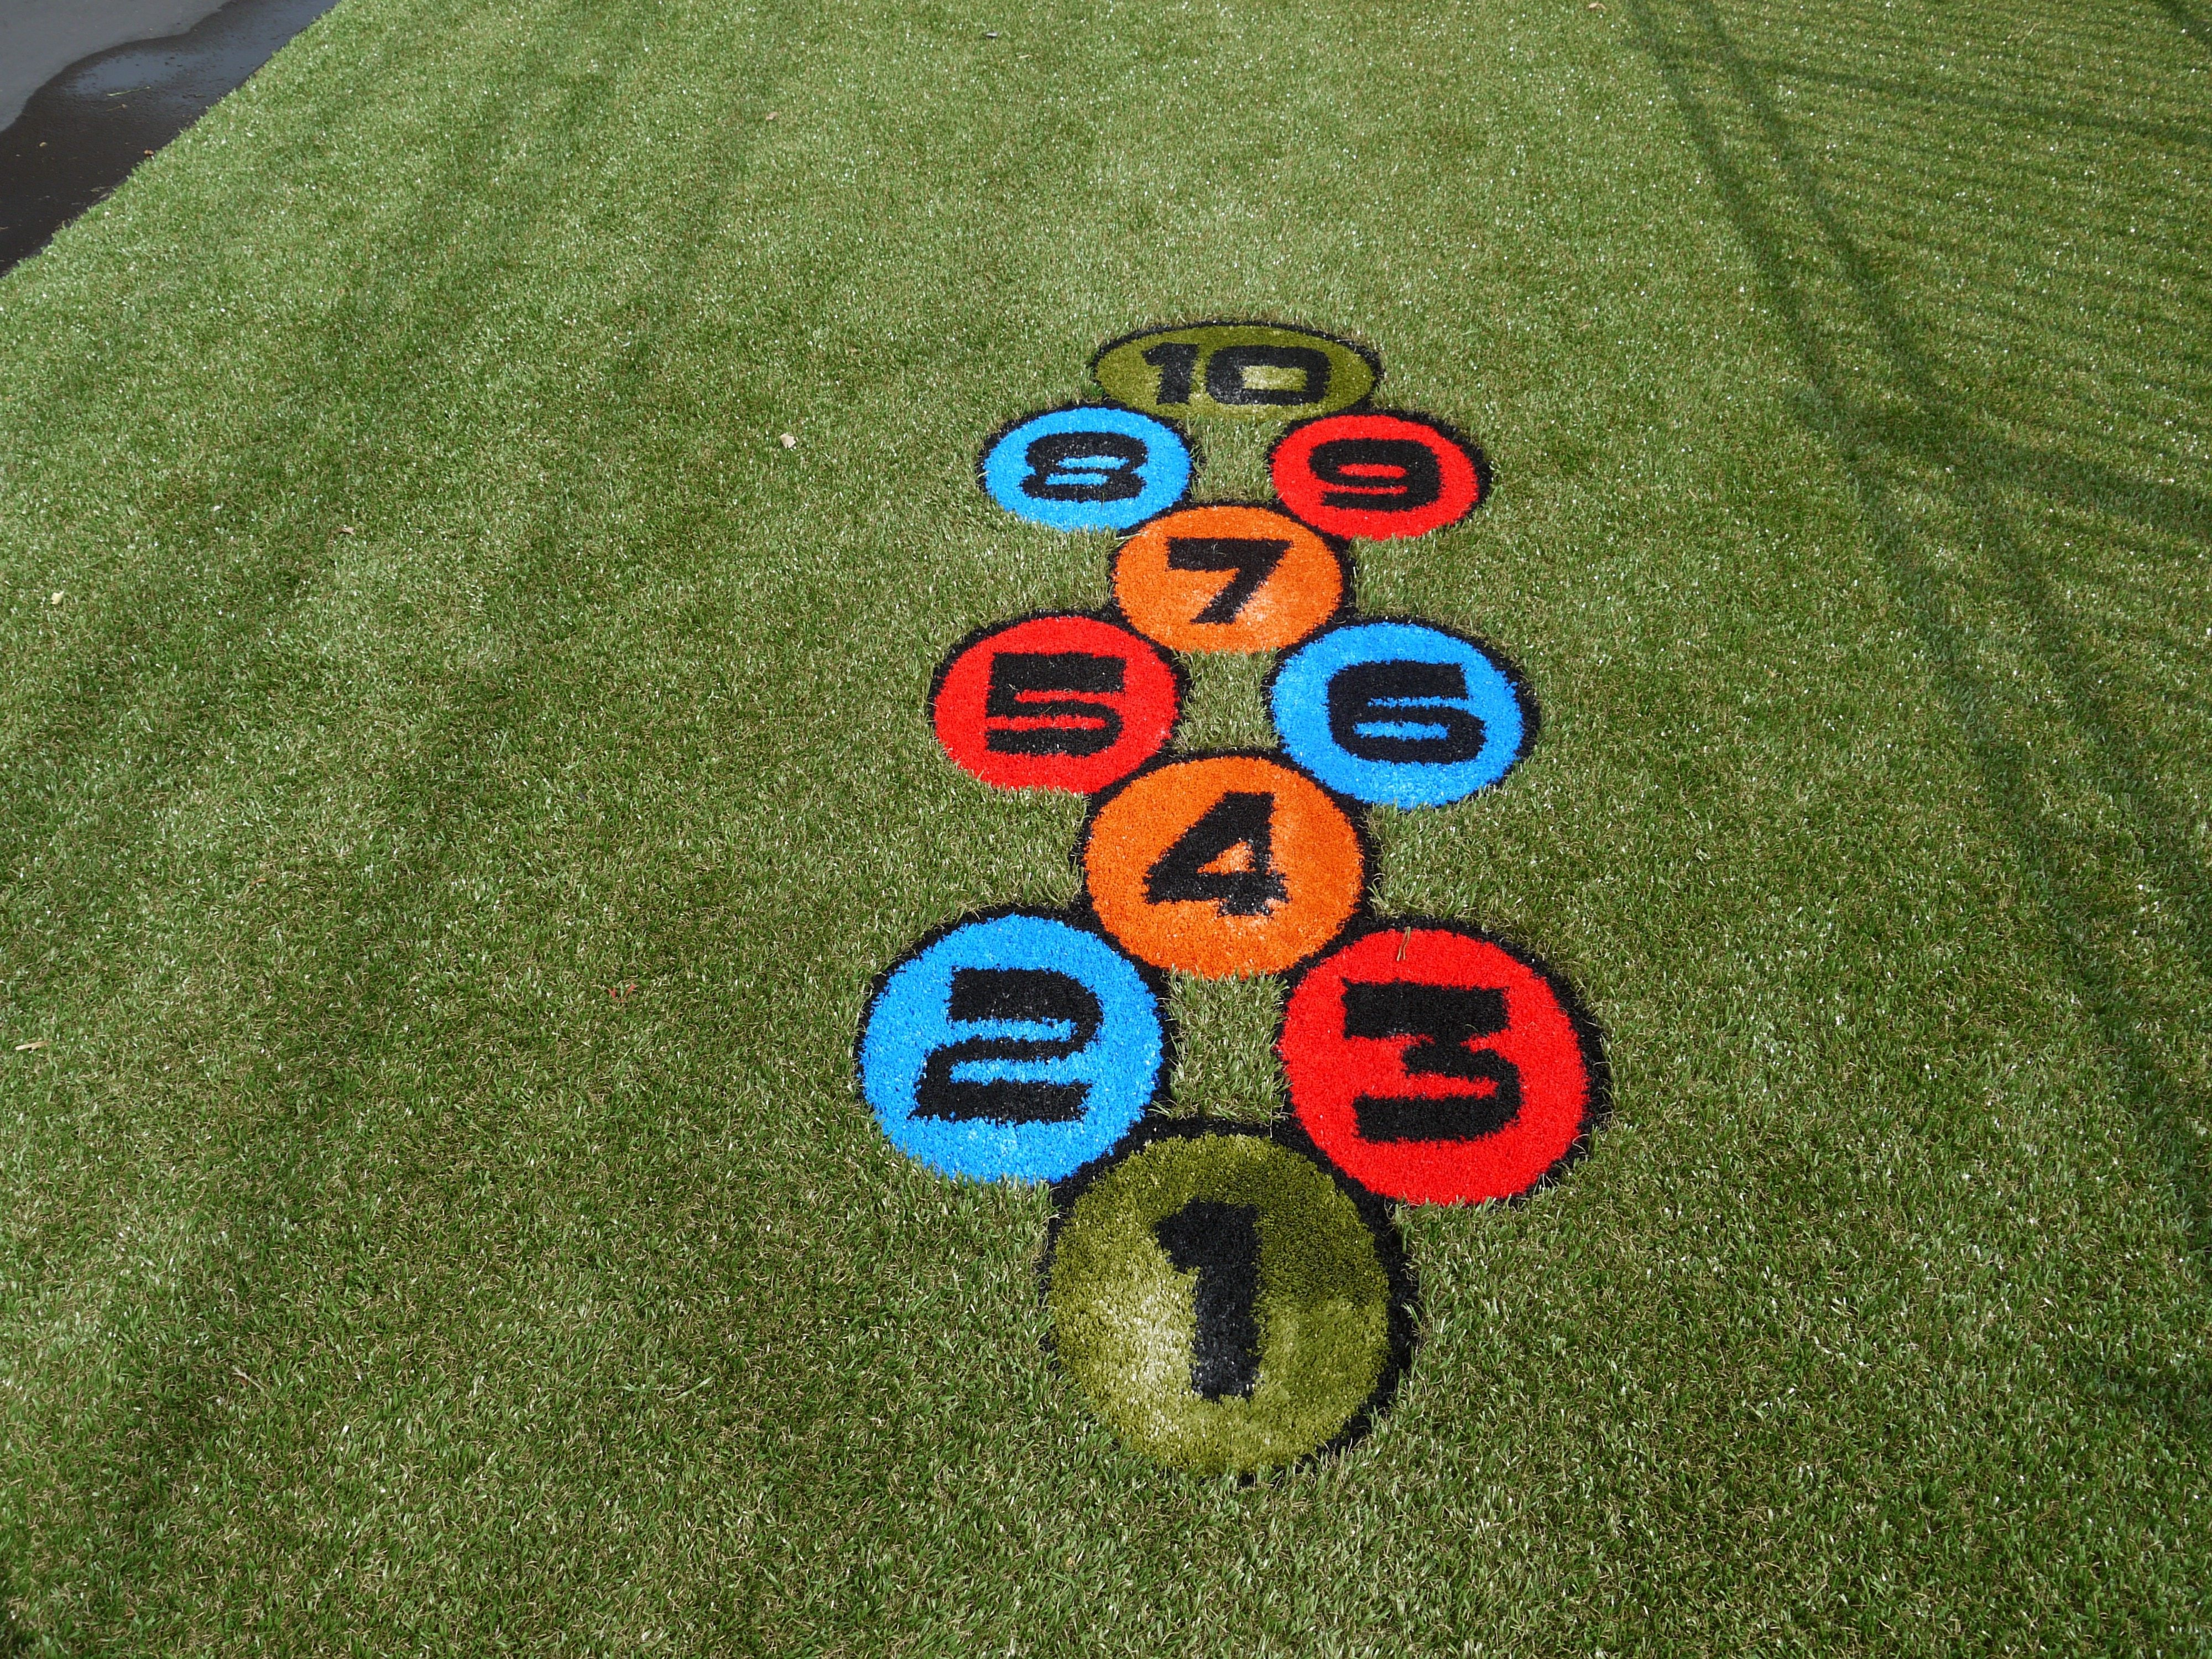 Contact us to learn more about Playground Grass!